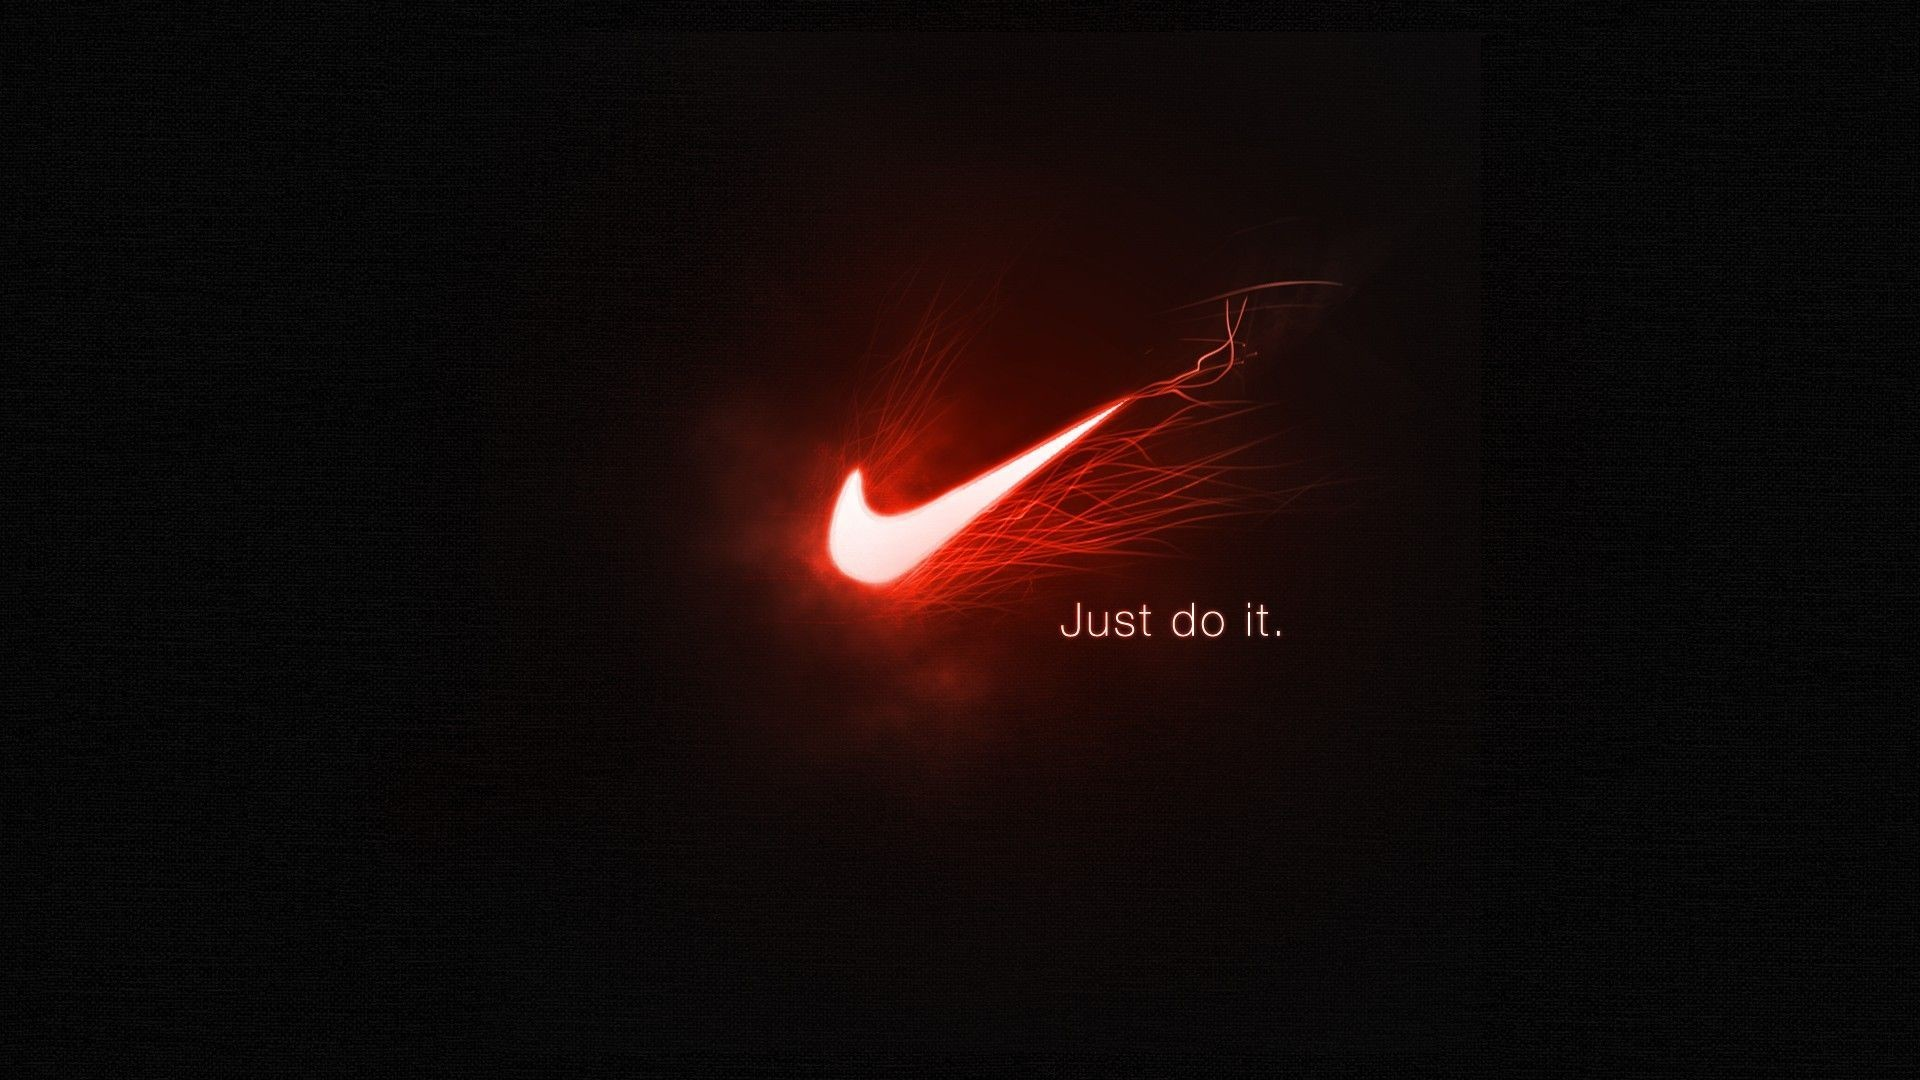 Wallpaper Nike, Full HDQ Nike Pictures and Wallpapers Showcase Imagens Da Nike  Wallpapers Wallpapers)